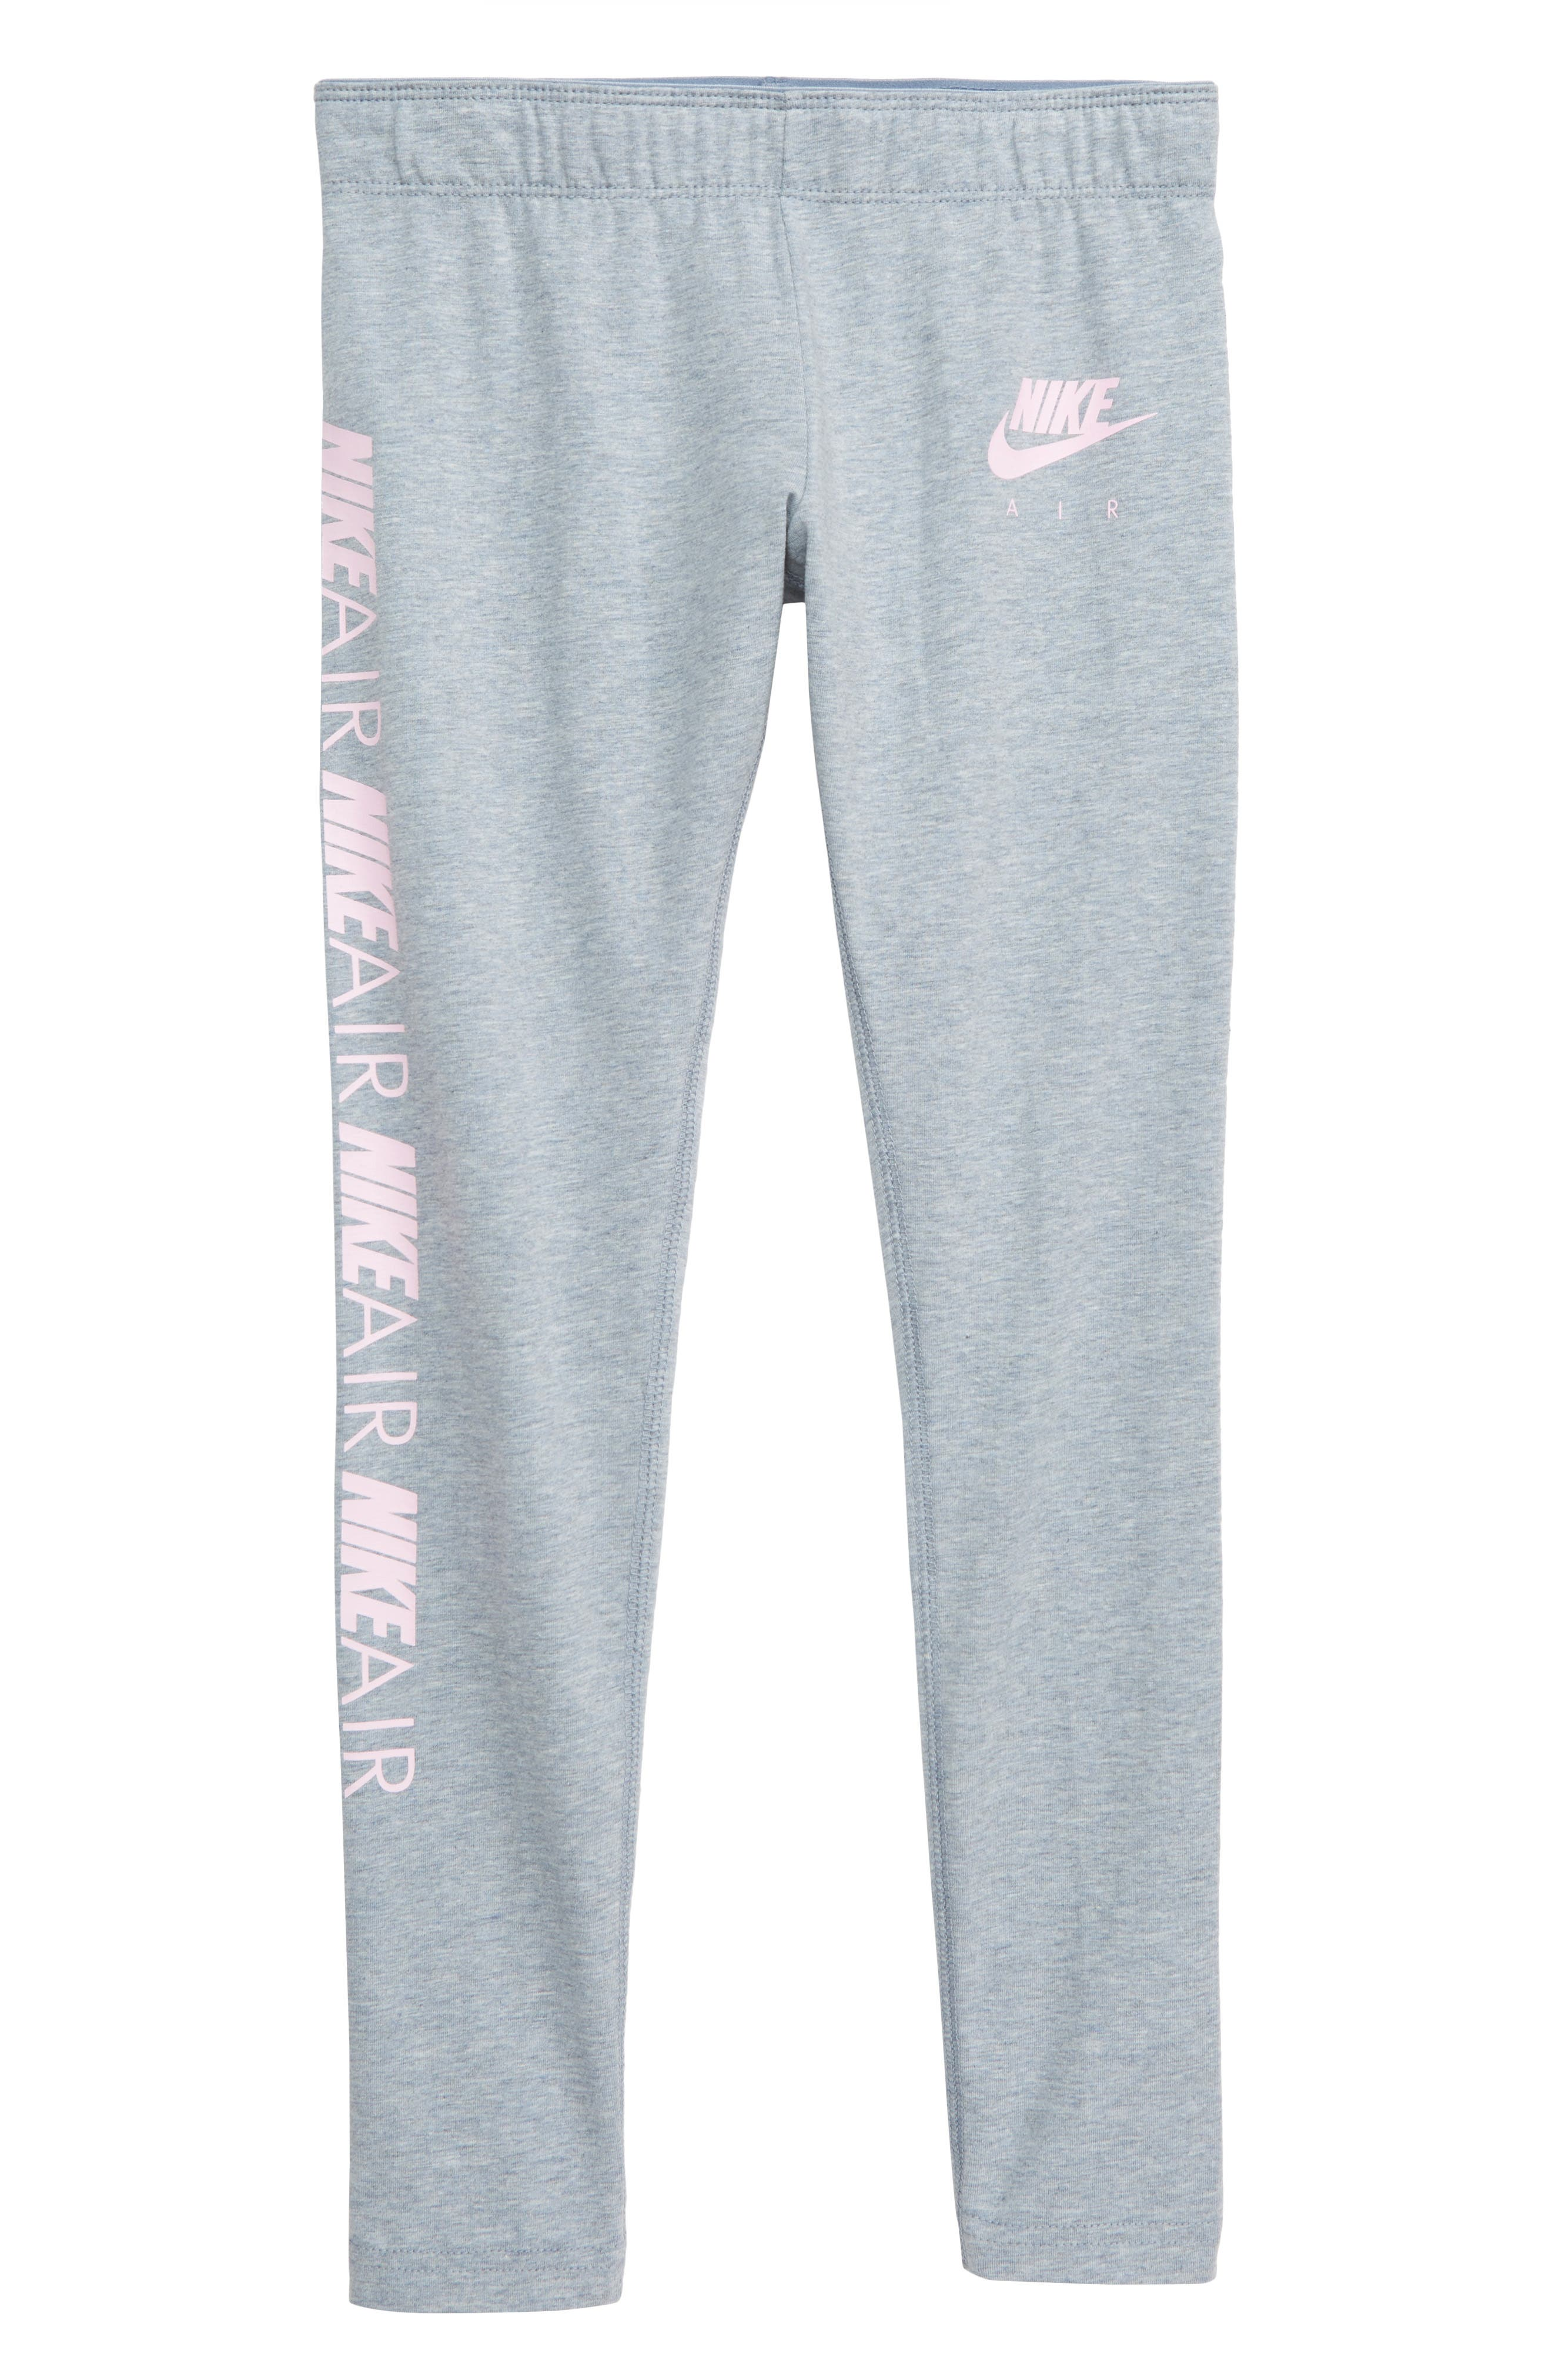 Clothing Nike Girls' Nordstrom And Accessories Opx5w